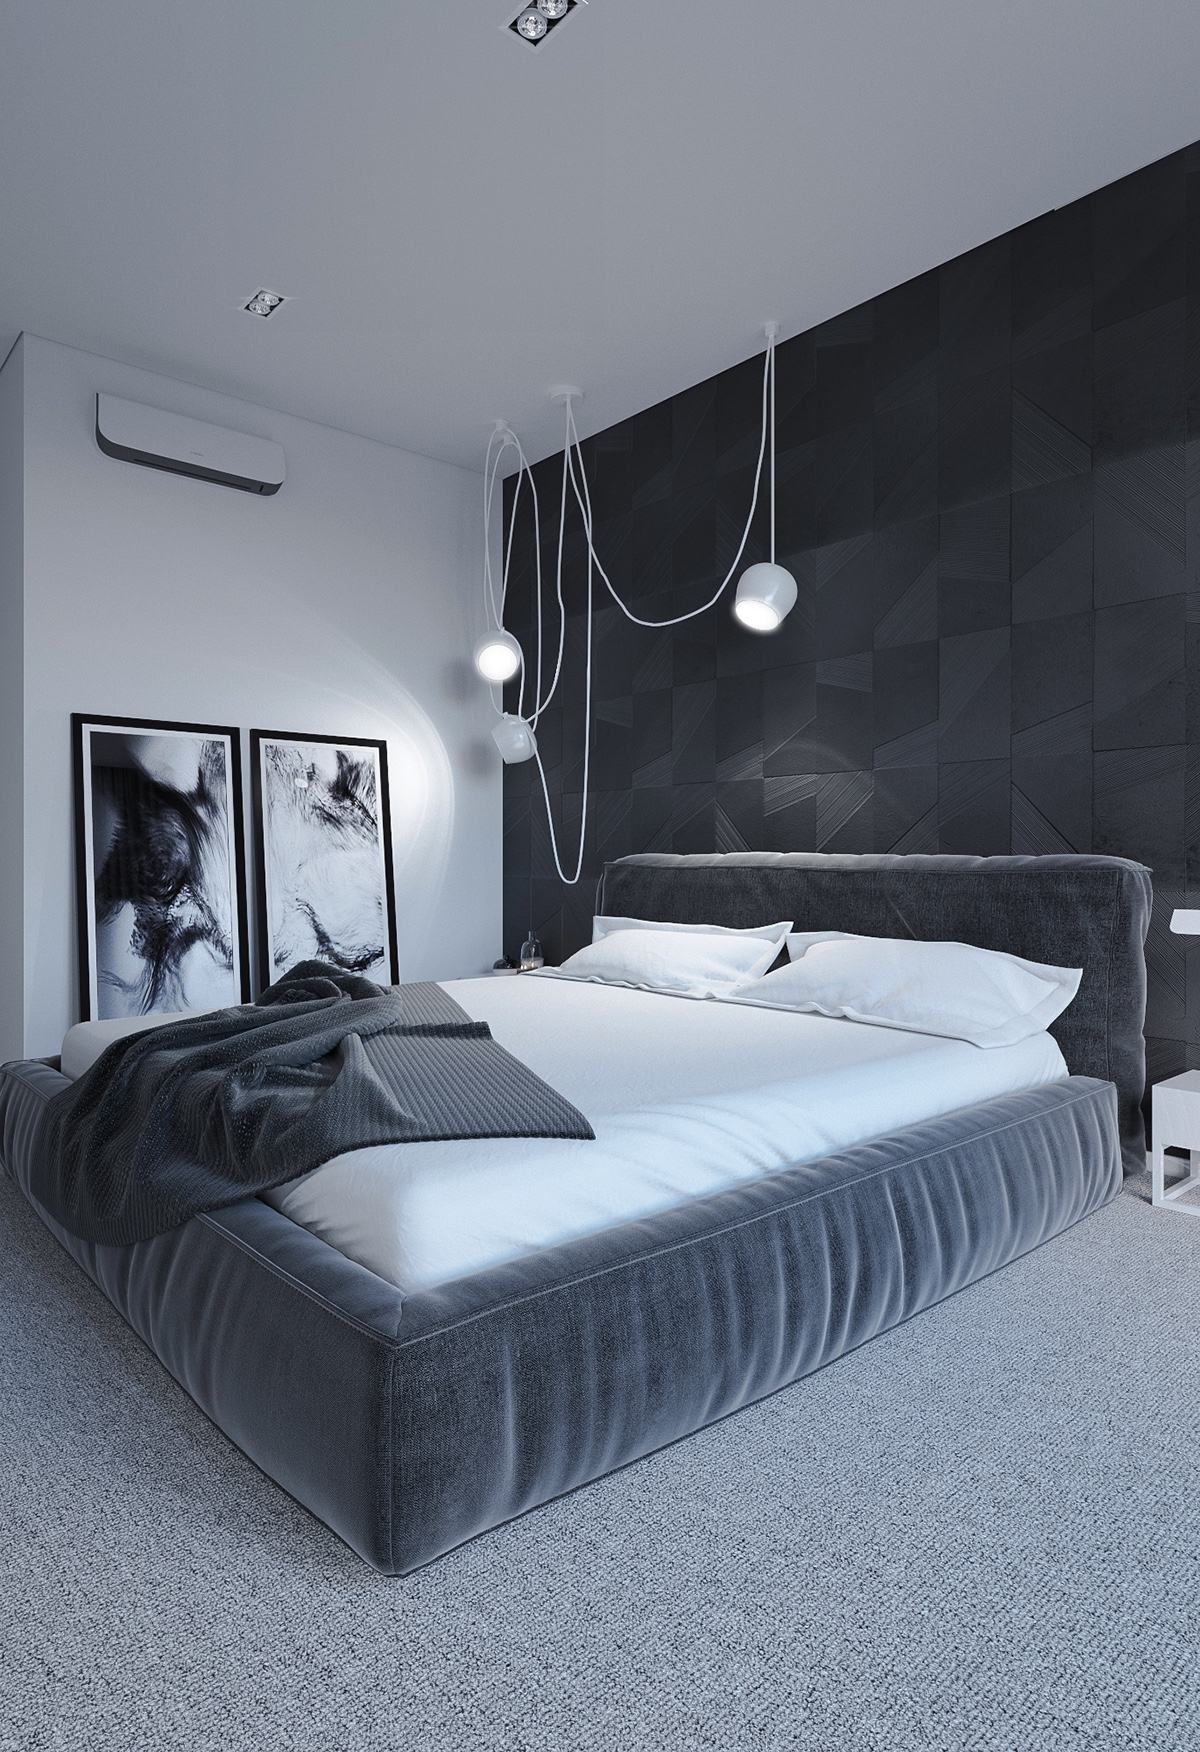 6 dark bedrooms designs to inspire sweet dreams for Bedroom designs black and grey